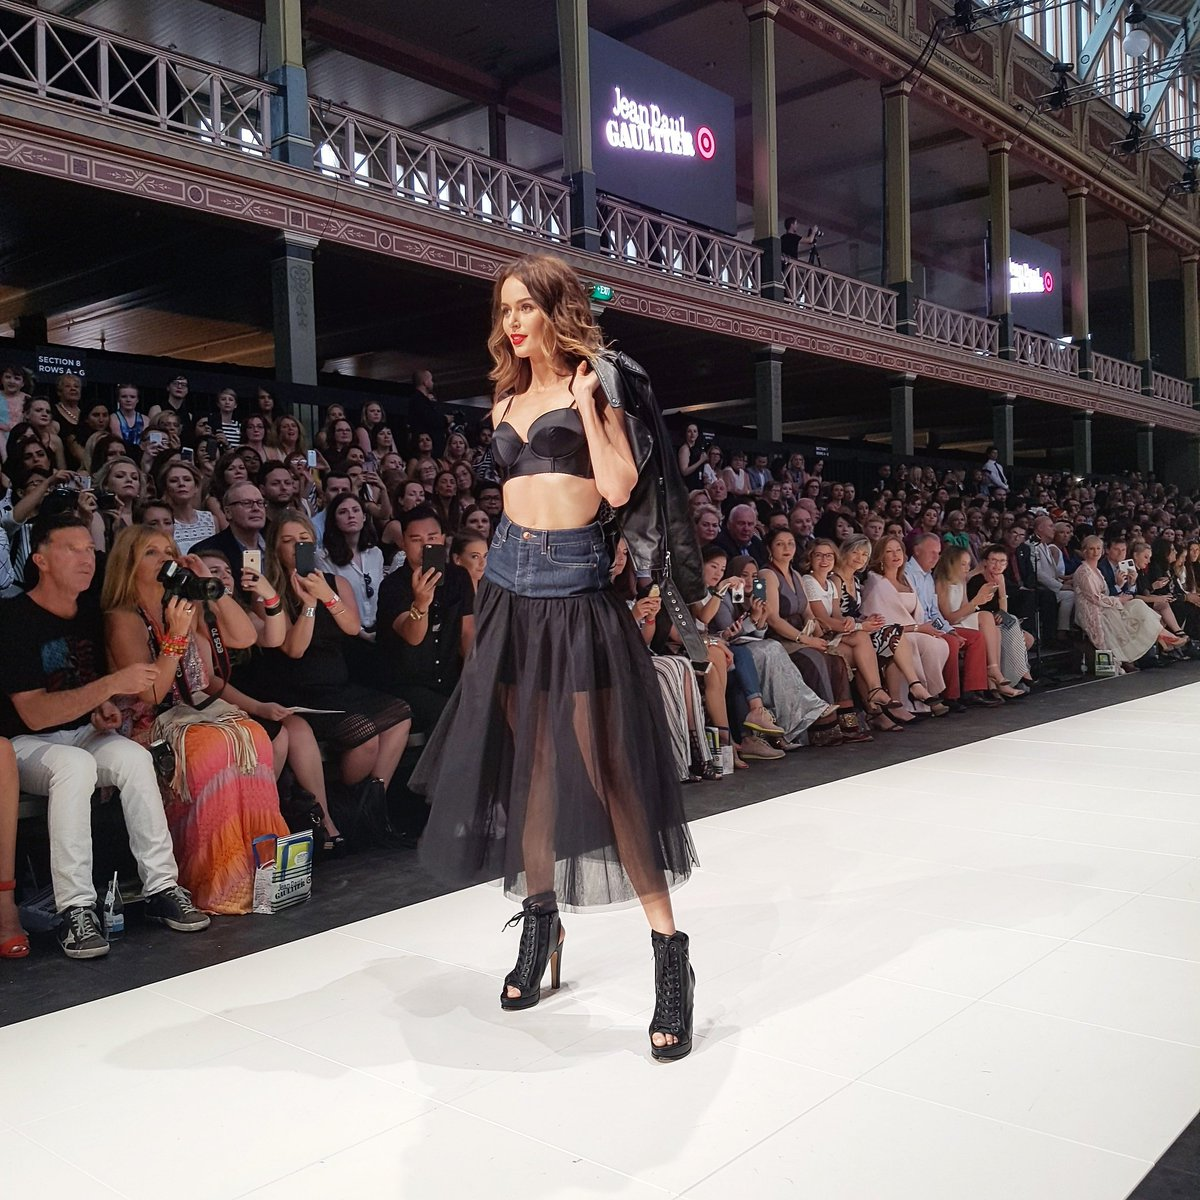 Supermodel @nictrunfio opens the #JPGforTarget Runway show #VAMFF https://t.co/8DhLj2THI7